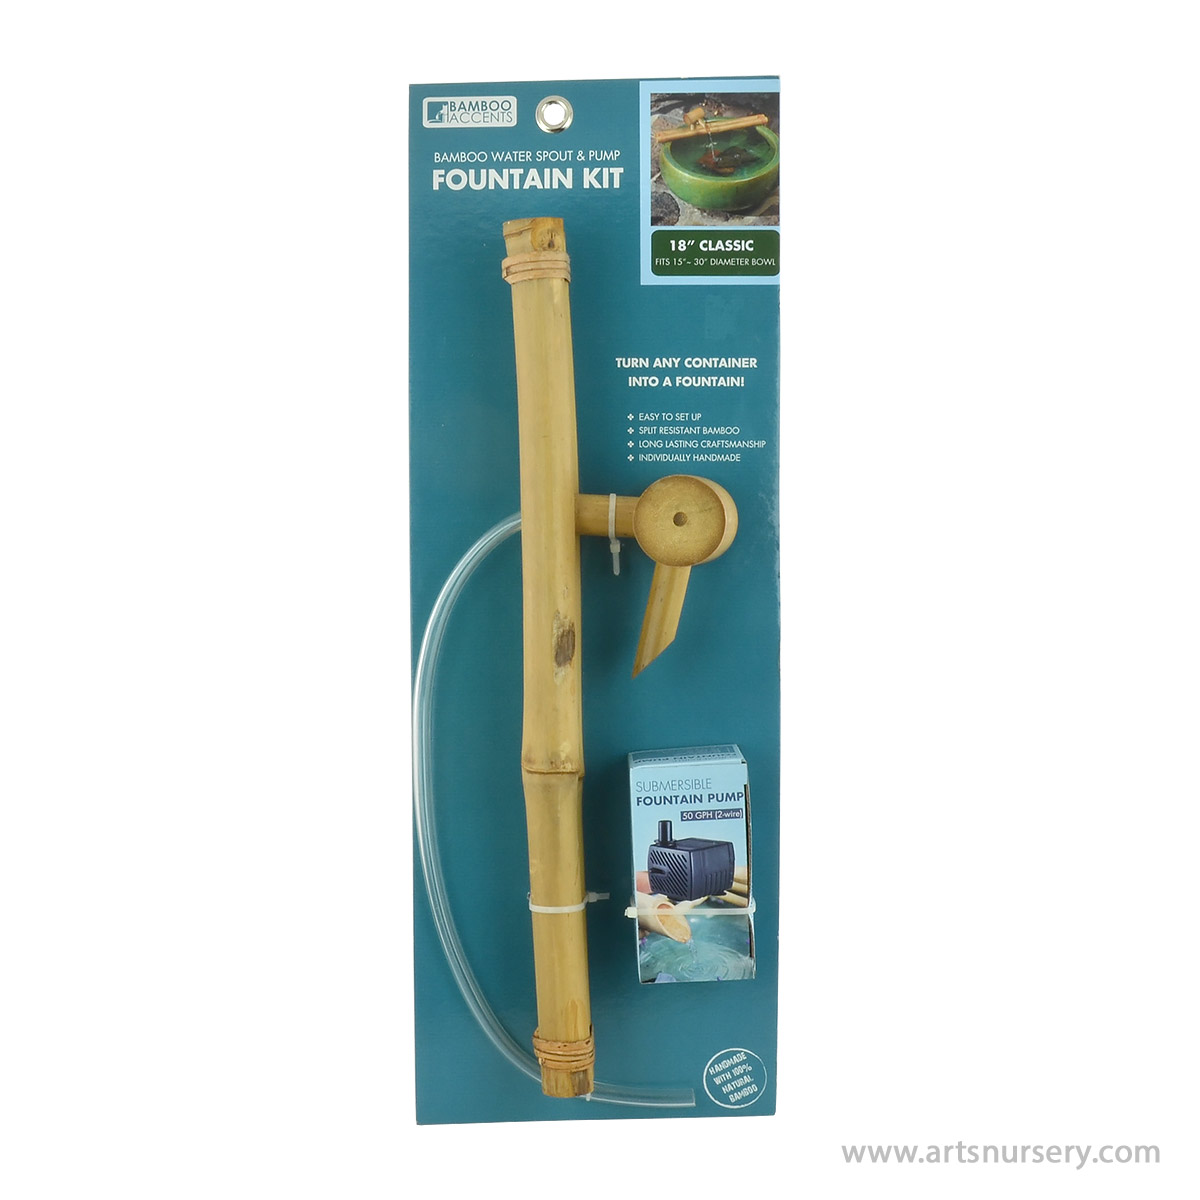 Bamboo Accents 18 Inch Classic Bamboo Water Spout and Pump Fountain Kit